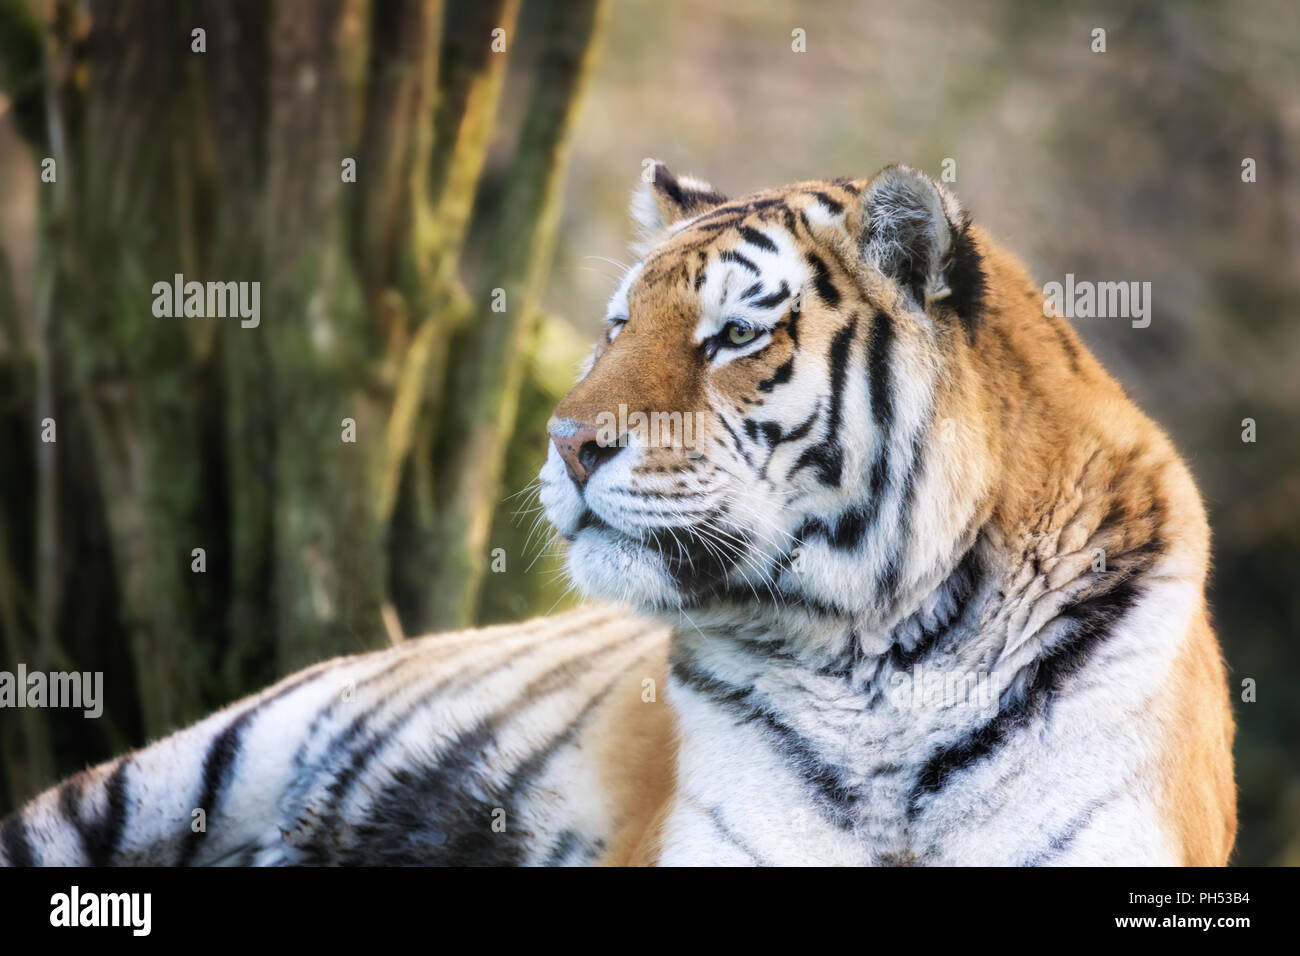 Adult Siberian tiger, Panthera tigris altaica, in afternoon sunlight. This endangered cat is indigenous to Siberia and far eastern Russia. - Stock Image